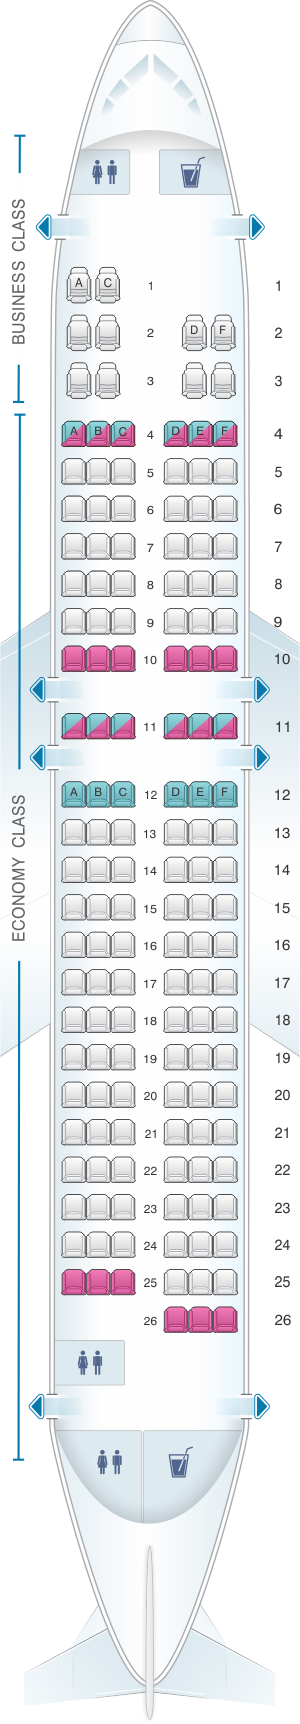 Seat map for Egyptair Airbus A320 232